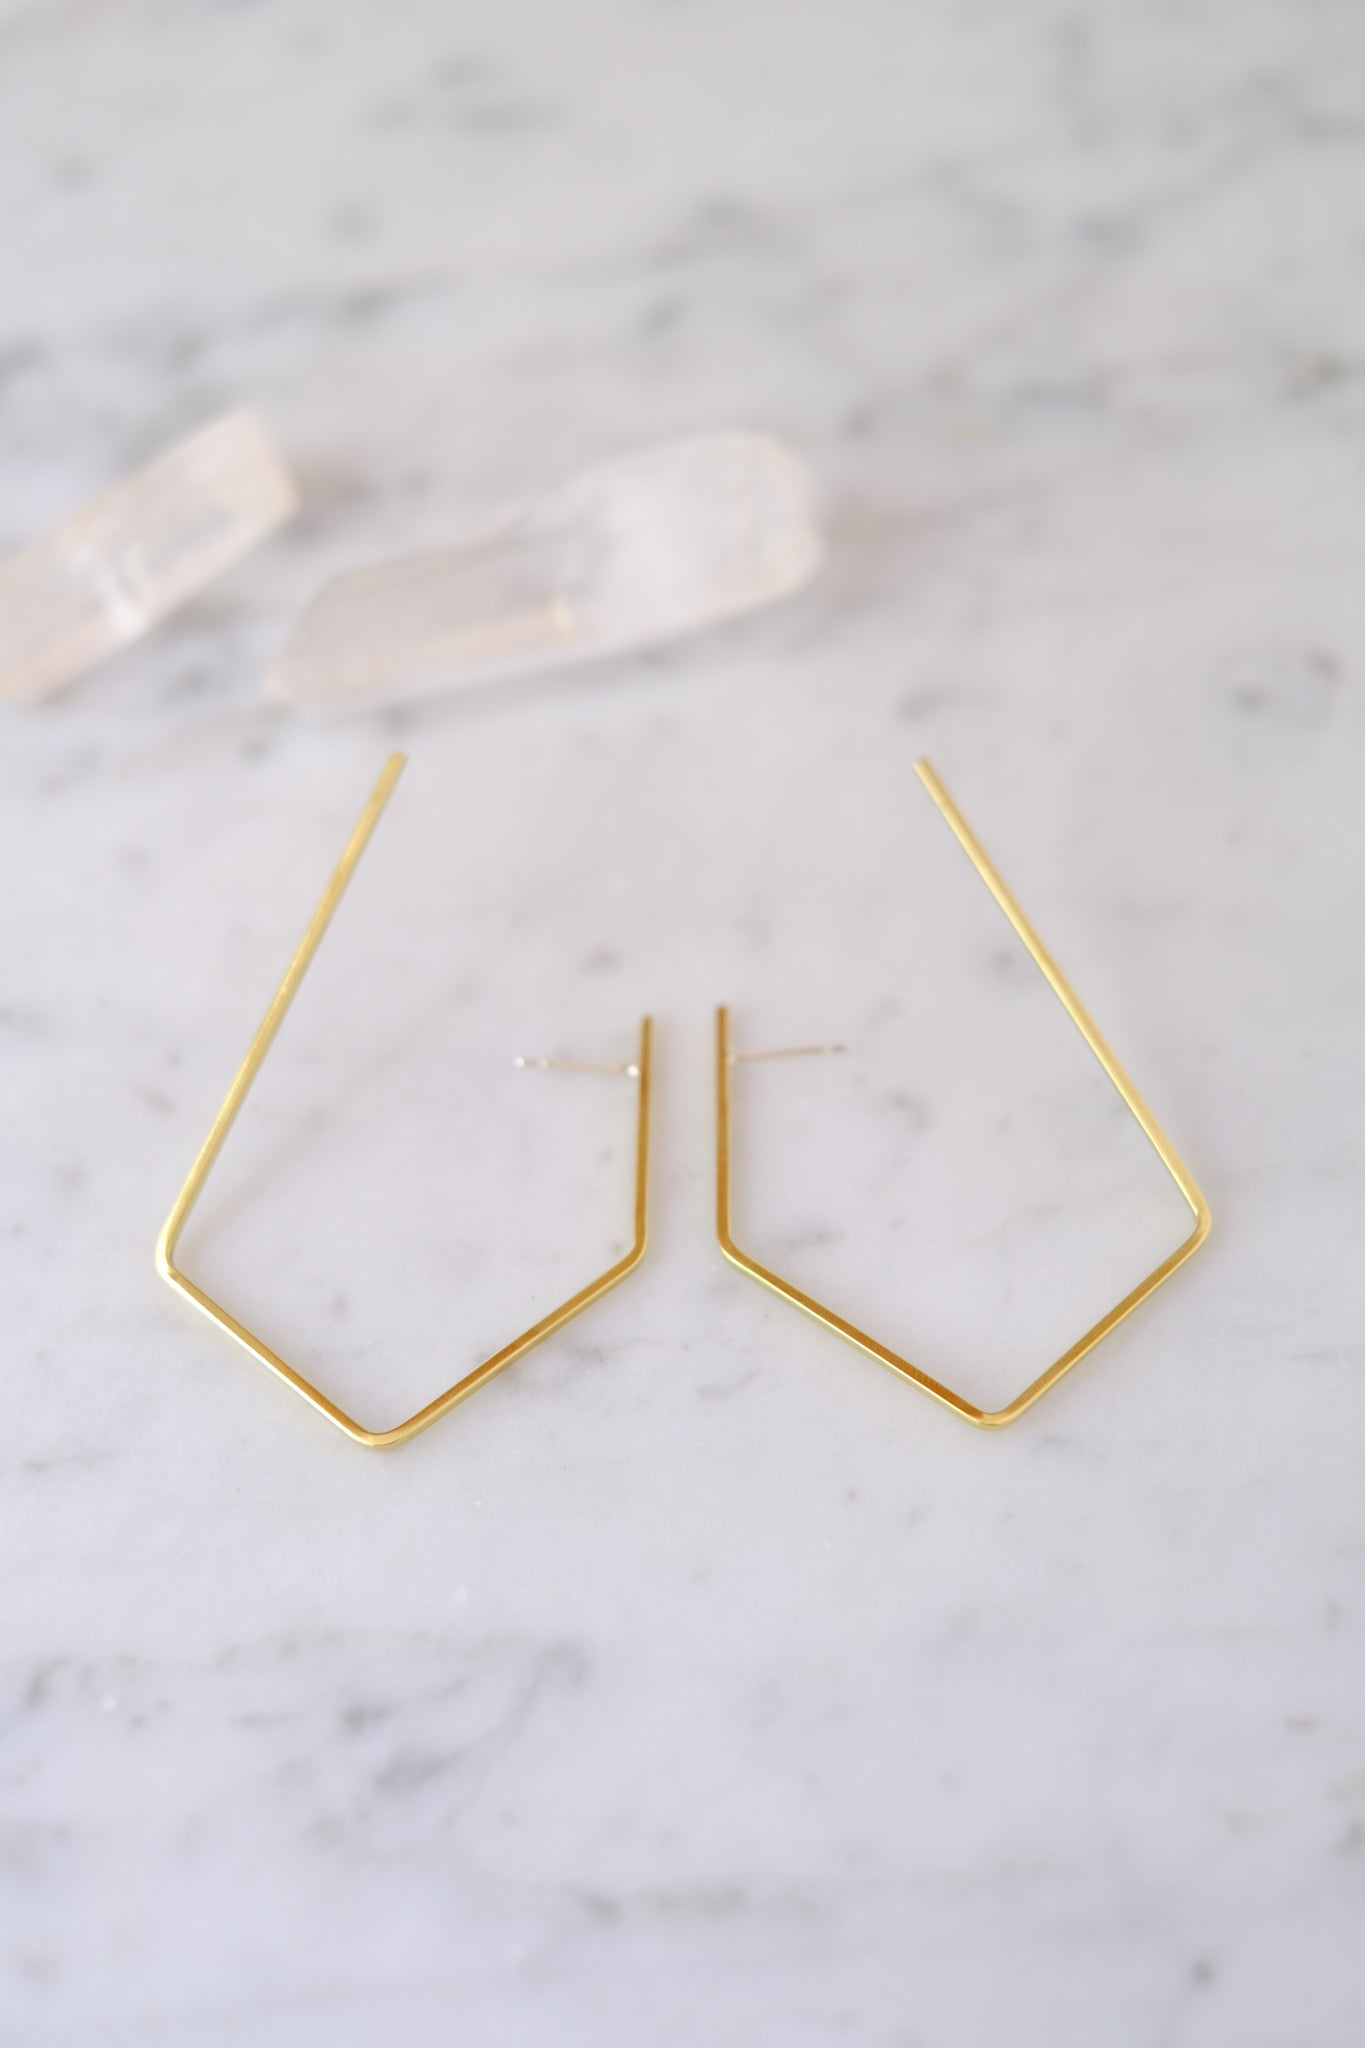 K/ller :: Earrings, Oblong Brass Hoops Medium